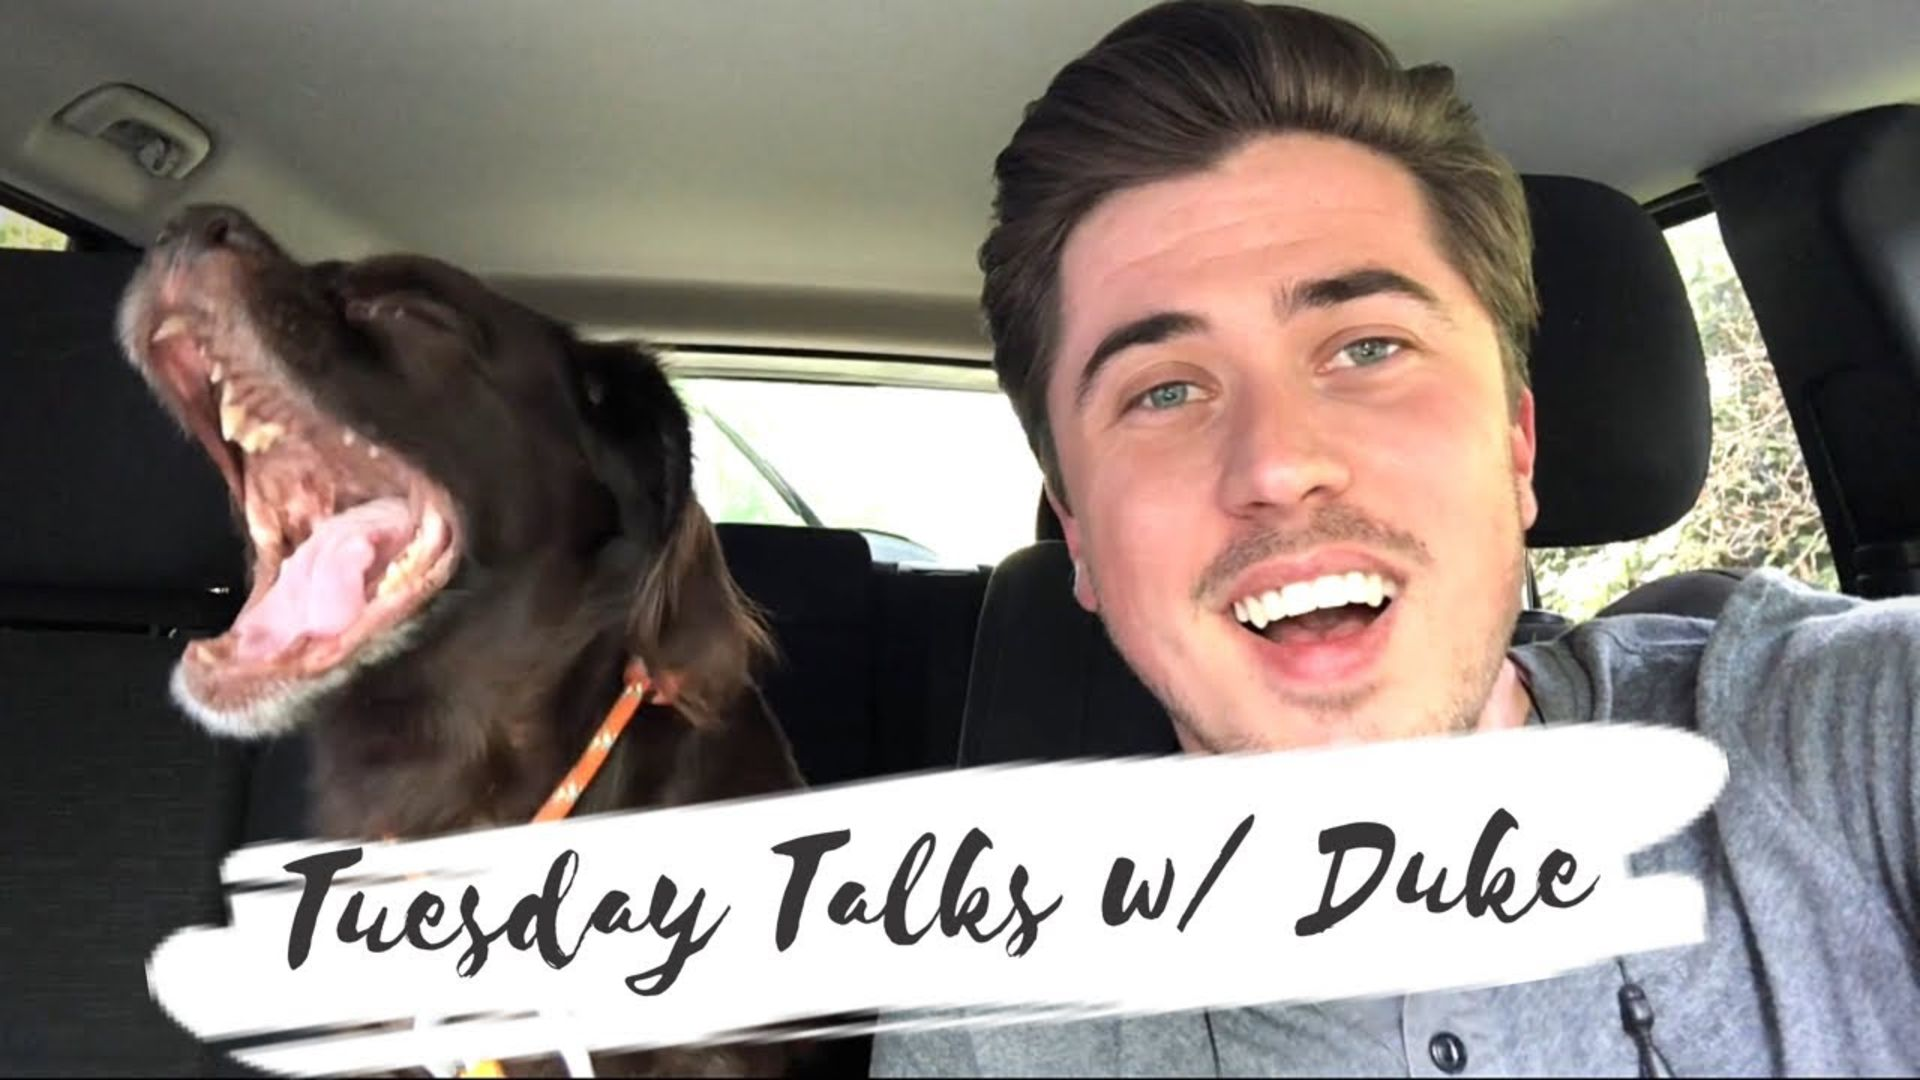 Tuesday Talks With Duke S1:E1 – wait for the bloopers